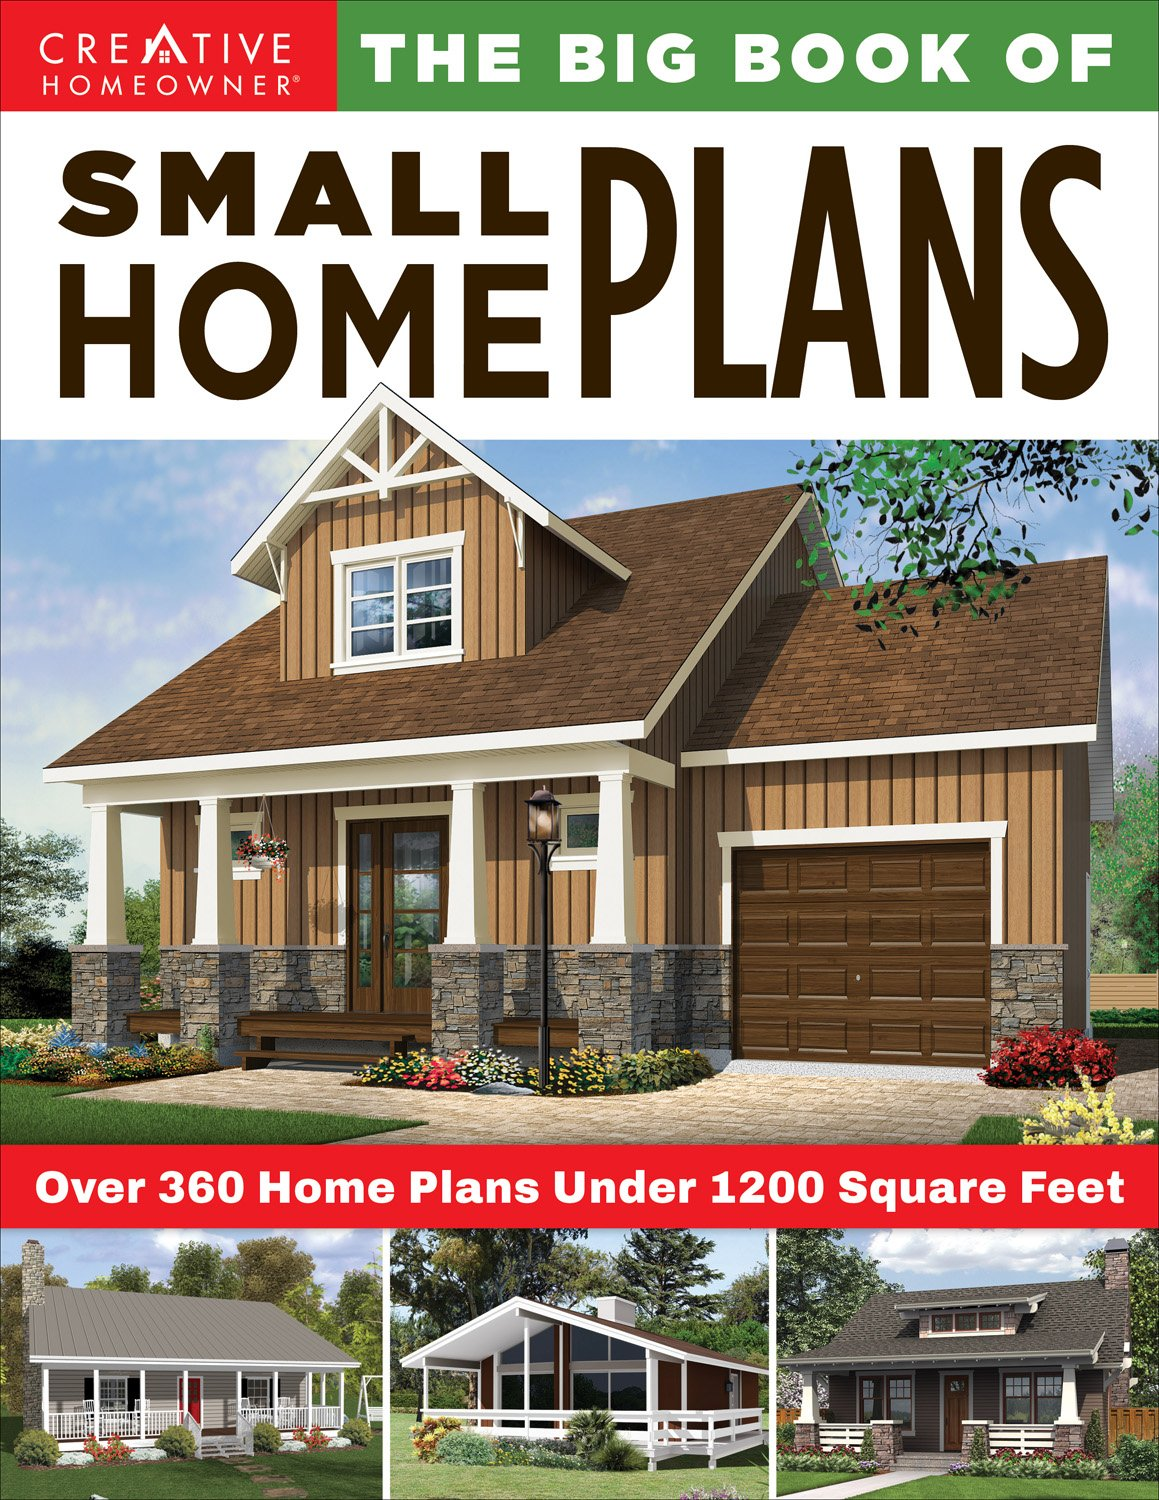 The Big Book of Small Home Plans: Over 360 Home Plans Under 1200 Square Feet (Creative Homeowner) Cabins, Cottages, & Tiny Houses, Plus How to Maximize Your Living Space with Organization & Decorating by Design Originals